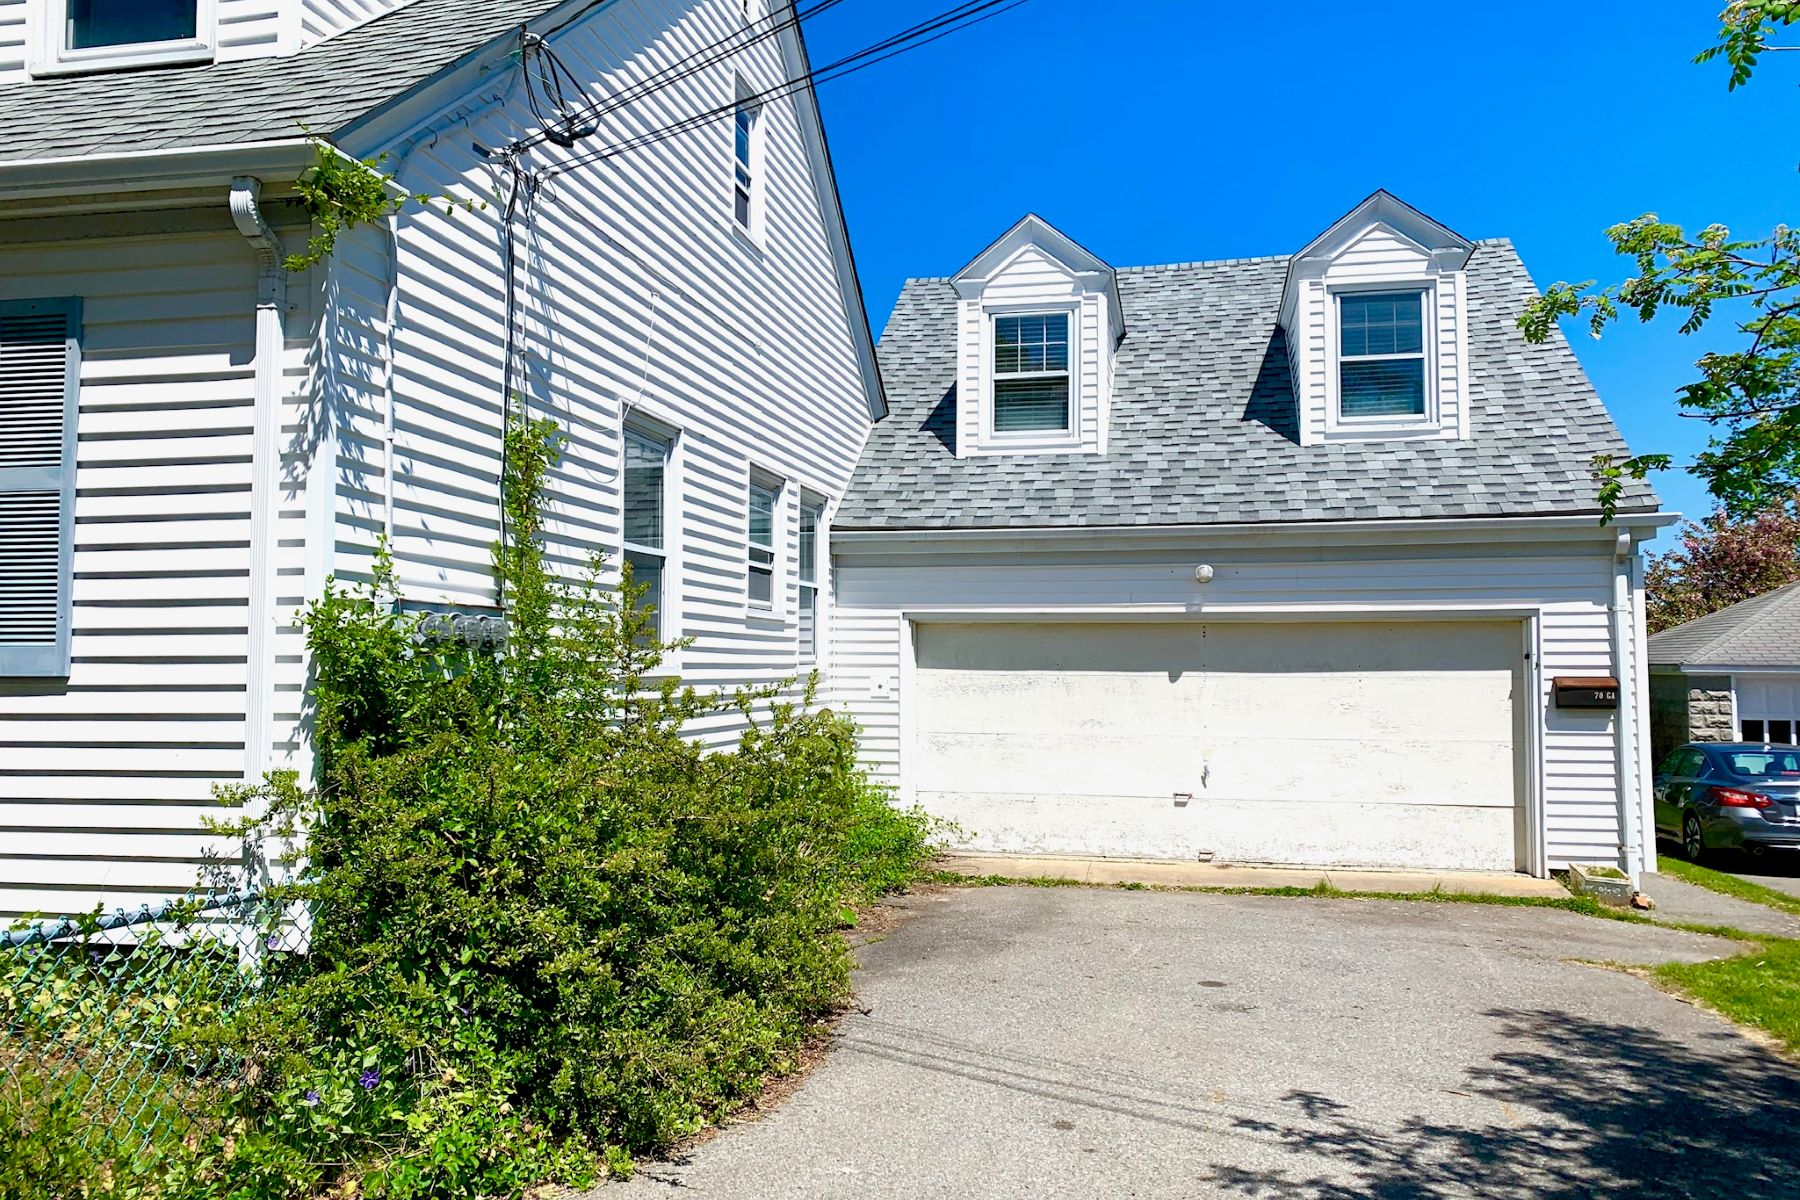 Additional photo for property listing at Rare Opportunity in Desirable Neighborhood 70 A Roseneath Avenue Newport, Rhode Island 02840 United States